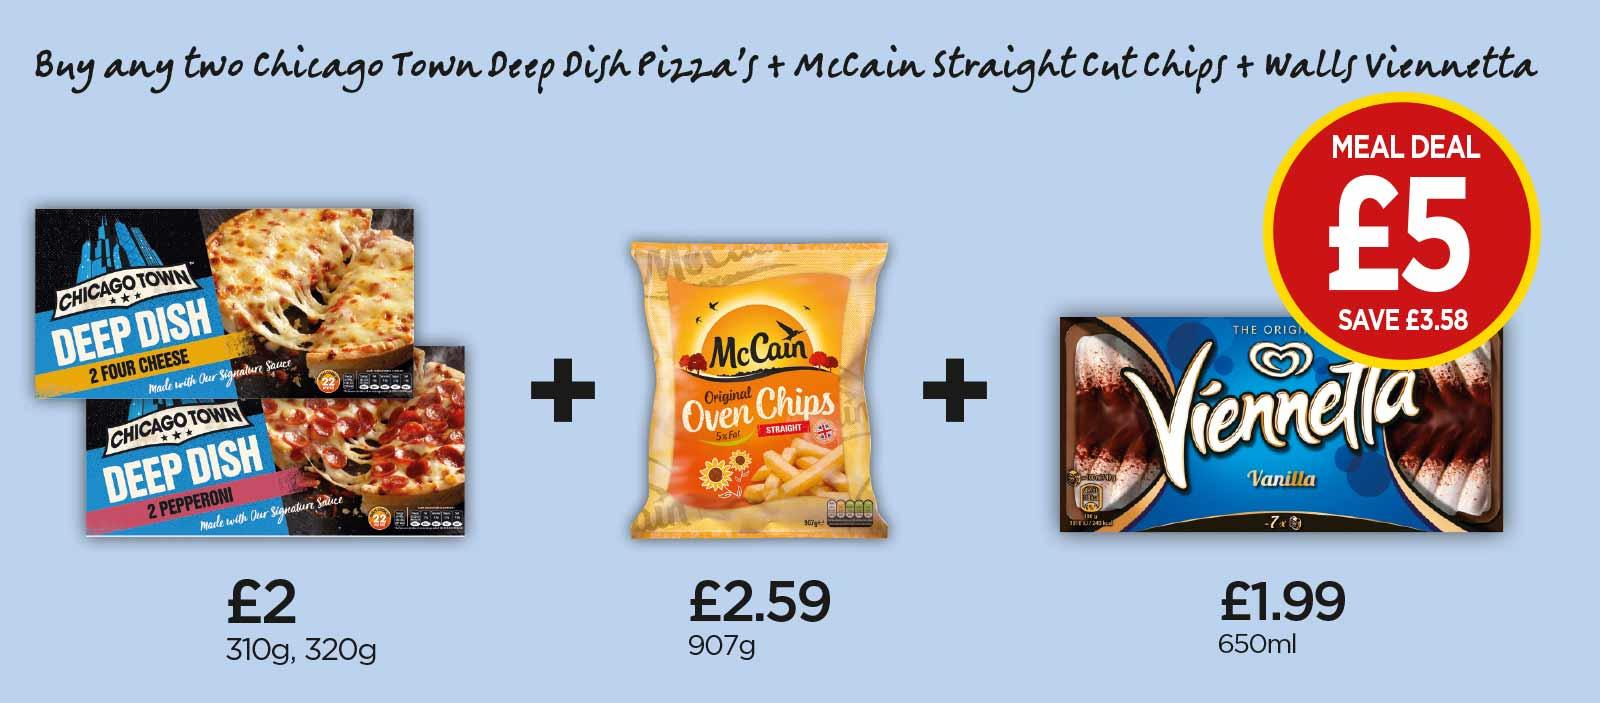 FROZEN MEAL DEAL: Chicago Town Deep Dish 2 Four Cheese Pizzas, Chicago Town Deep Dish 2 Pepperoni Pizzas, McCain Straight Cut Chips, Viennetta Vanilla Ice Cream - £5 at Budgens